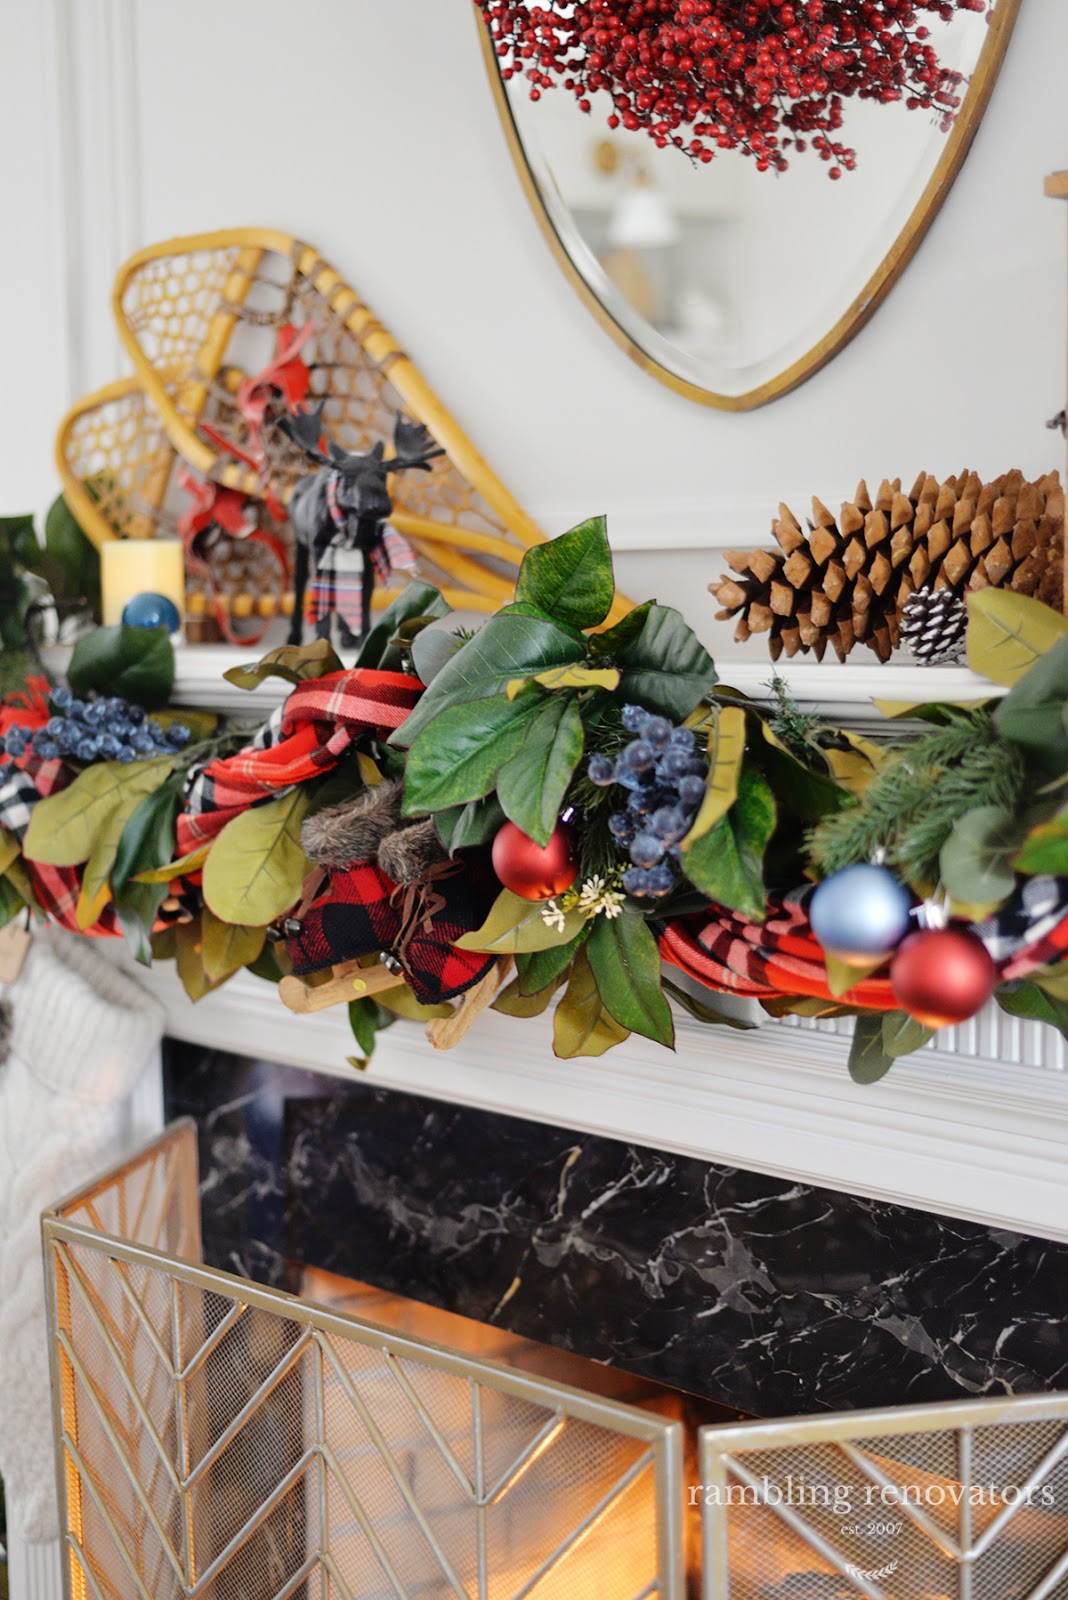 A lush and colourful red and blue Christmas mantel with a plaid scarf, blueberry picks and rustic accents